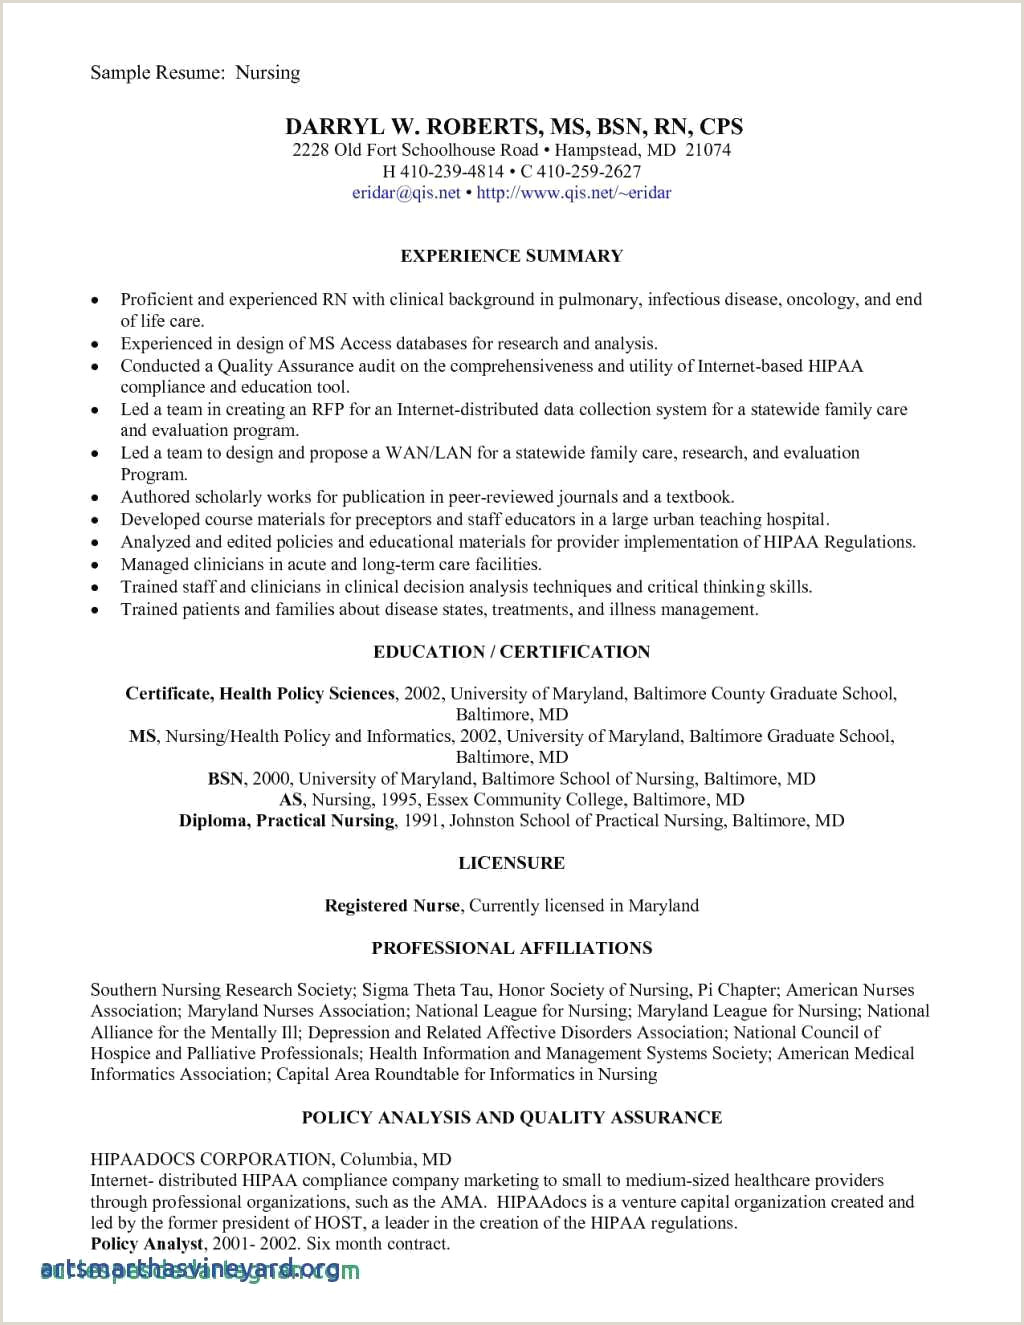 Sample Resume Graduate School Resume for Nursing Job Sample Cover Letter for Nursing Job